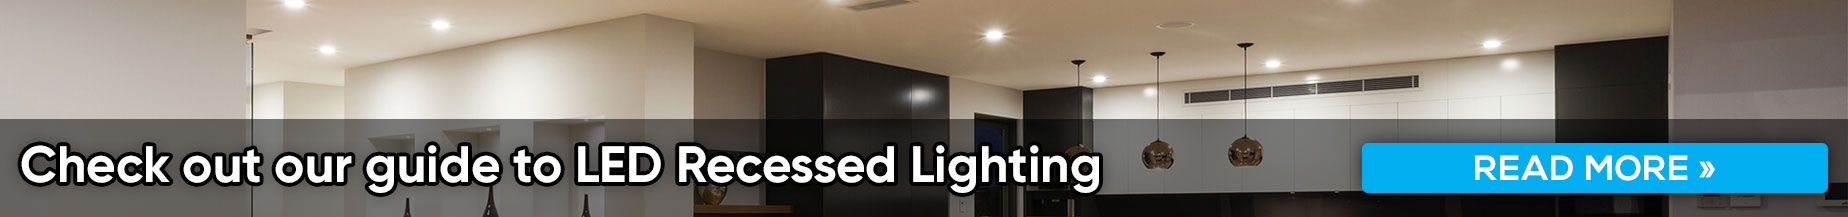 Led Recessed Lighting Led Downlights Led Downlight Kits Prolighting,Mosaic Kitchen Floor Tiles Ideas